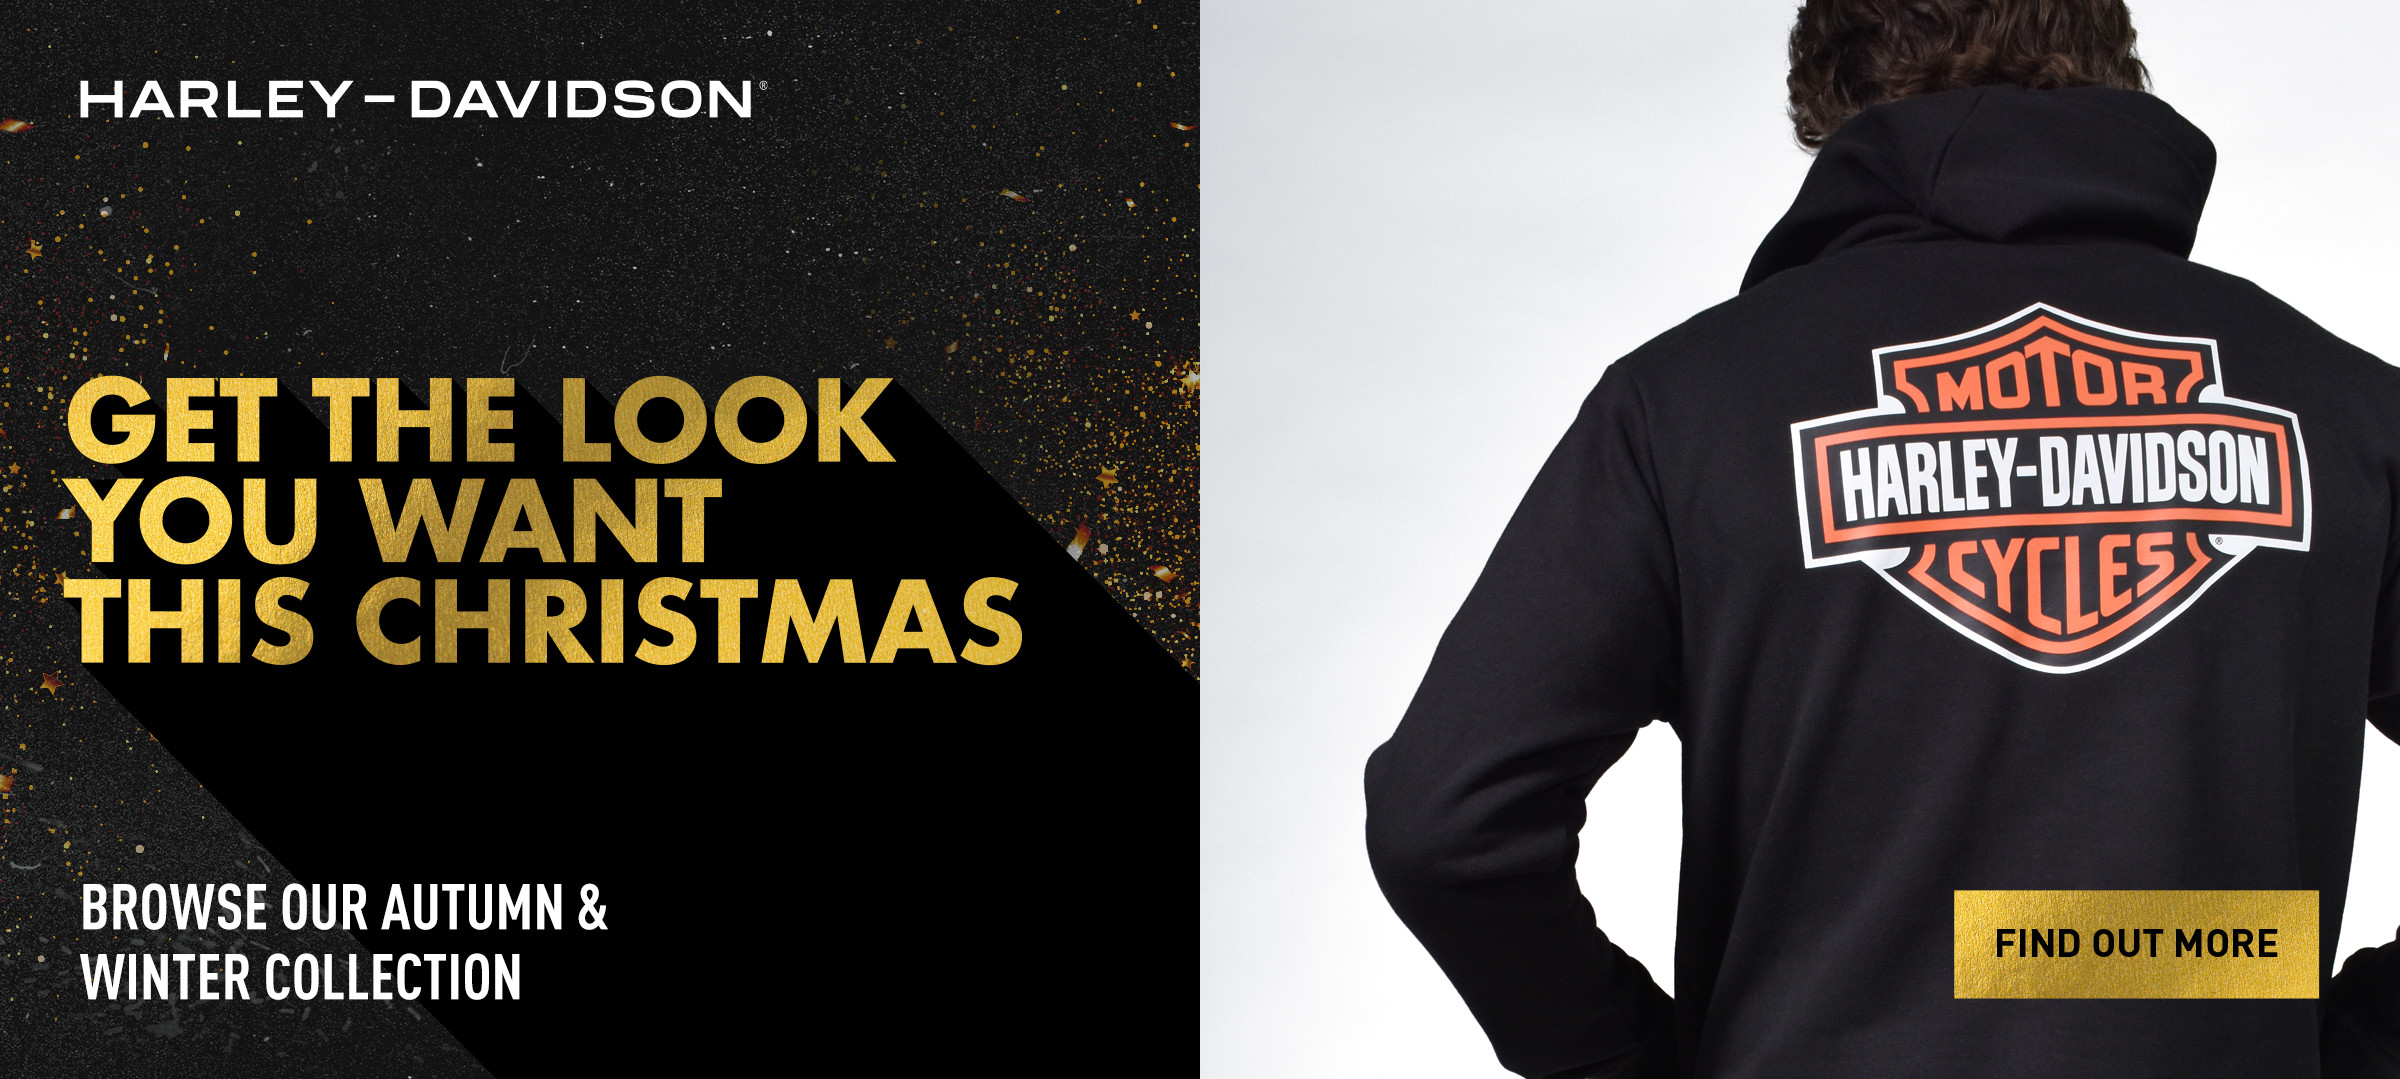 Get the look this Christmas